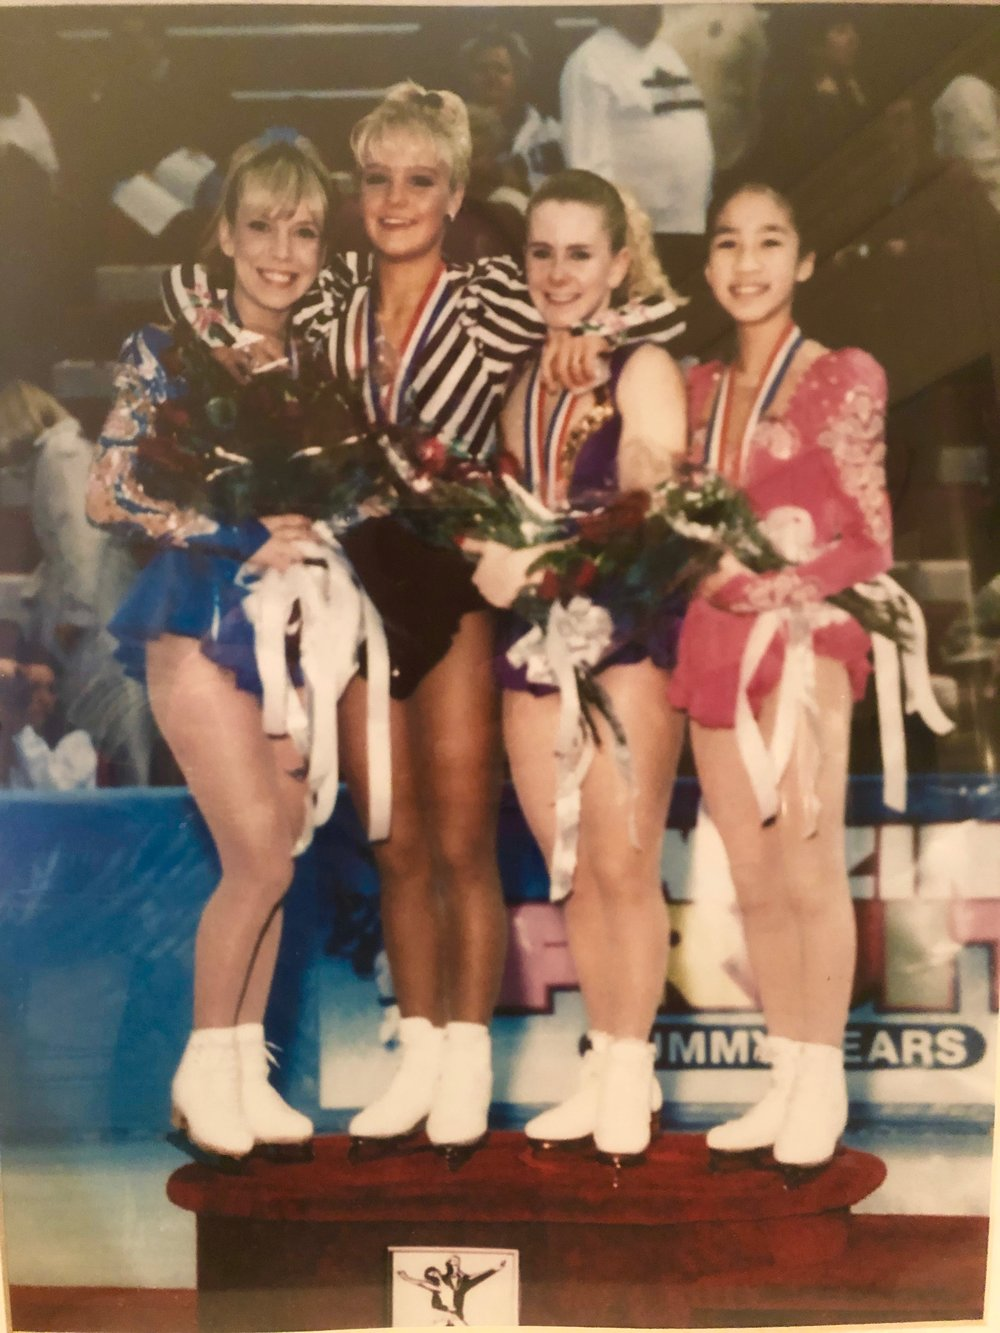 The original top four finishers in women's singles at the 1994 U.S. Figure Skating Championships: Left to right: Elaine Zayak (4), Nicole Bobek (3), Tonya Harding (1   )    and Michelle Kwan (2). (*-Harding was tripped of the title.)